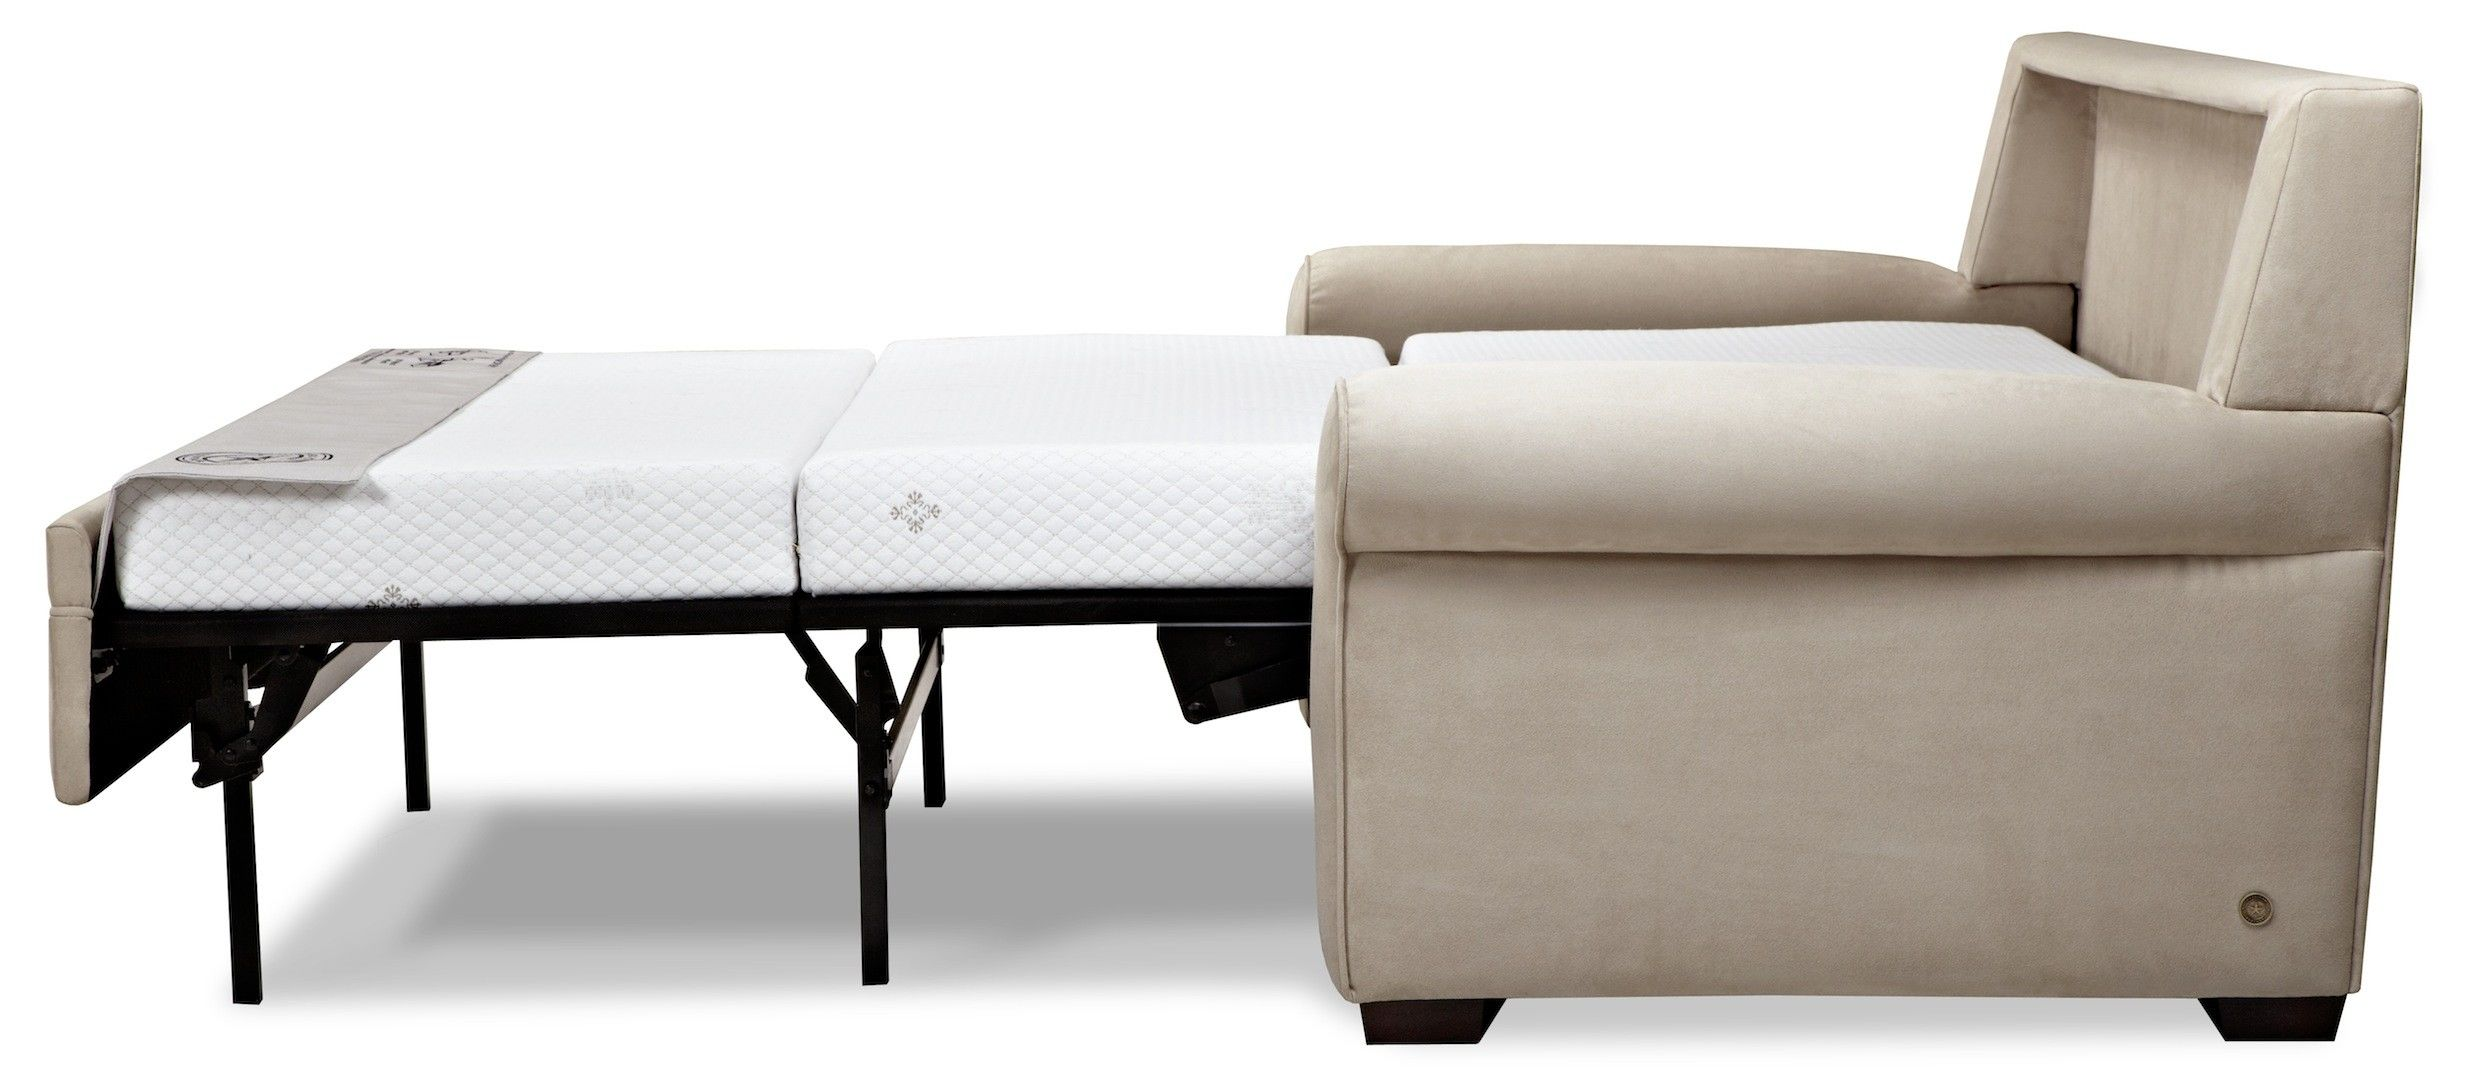 amazing sofa chair covers décor-Best Of sofa Chair Covers Décor